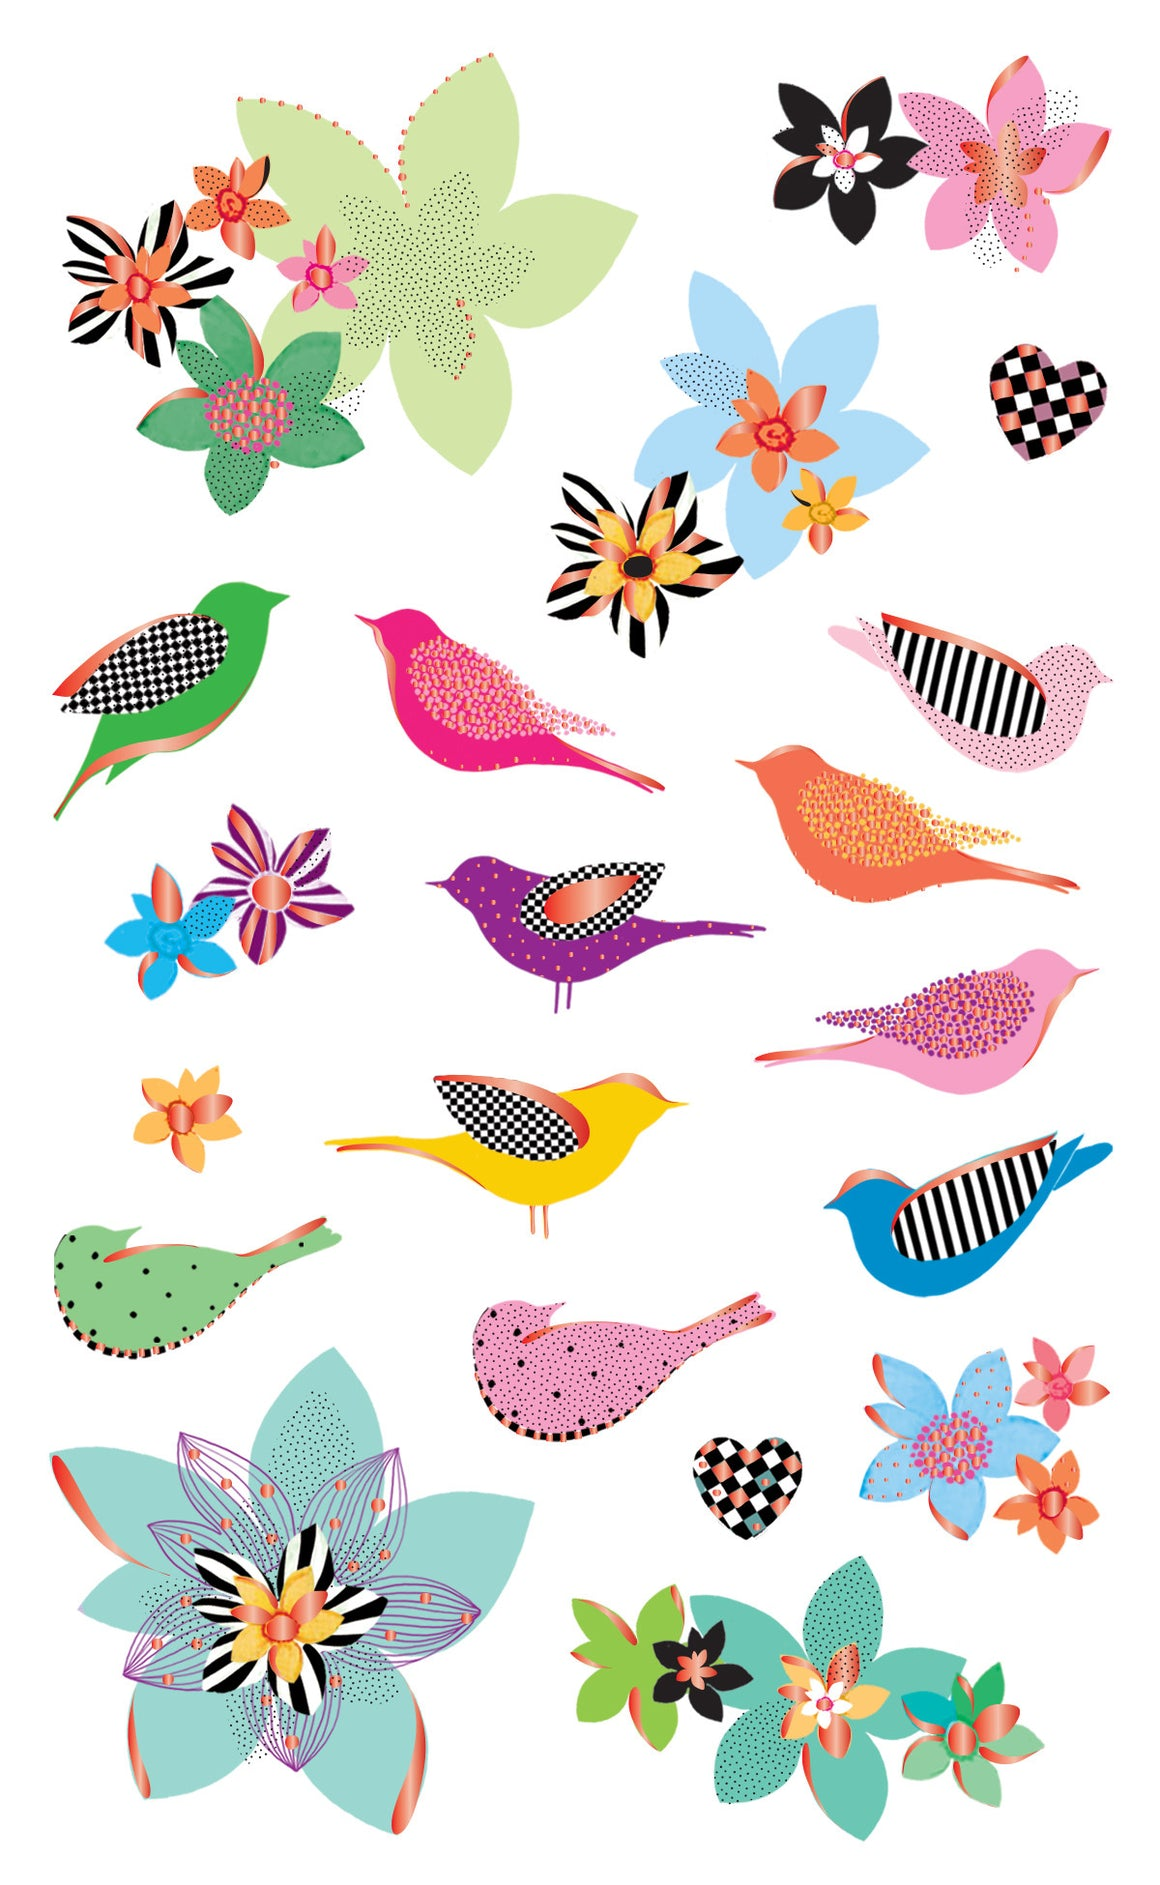 Turnowsky, feathered friends, stickers, Mrs. Grossman's Sticker Factory